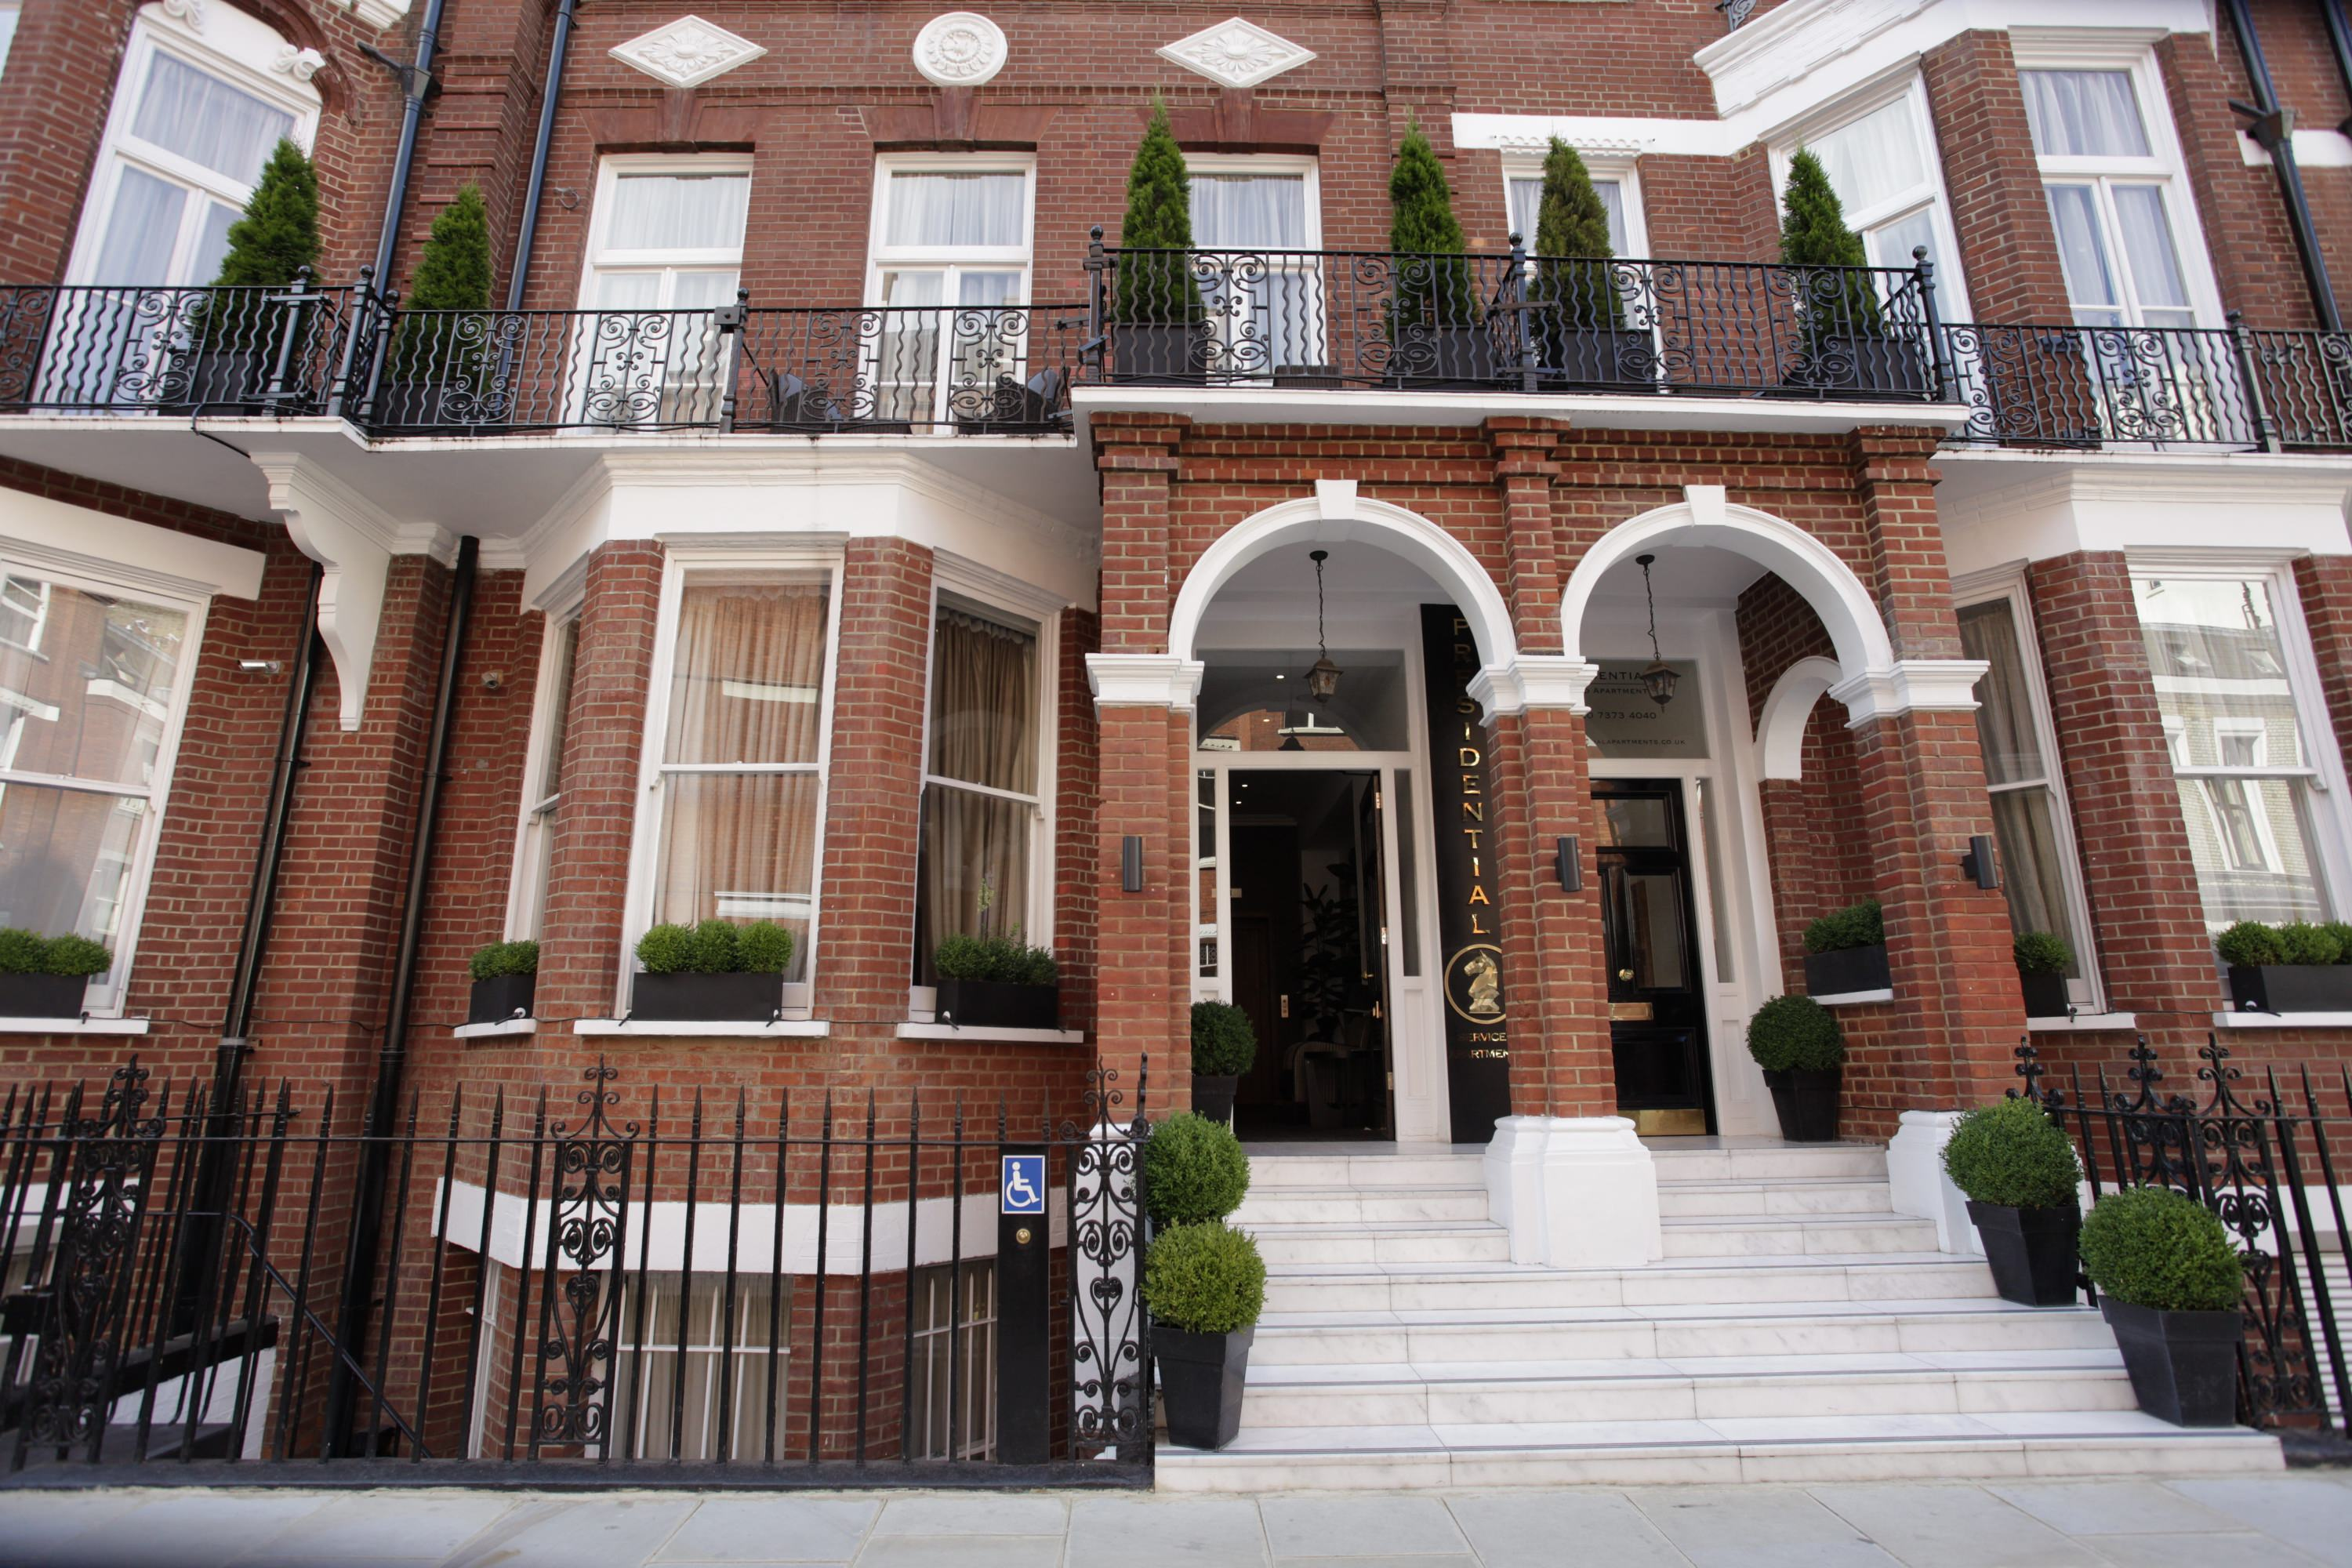 An oasis of calm, luxury and privacy in the heart of London: Presidential Apartments